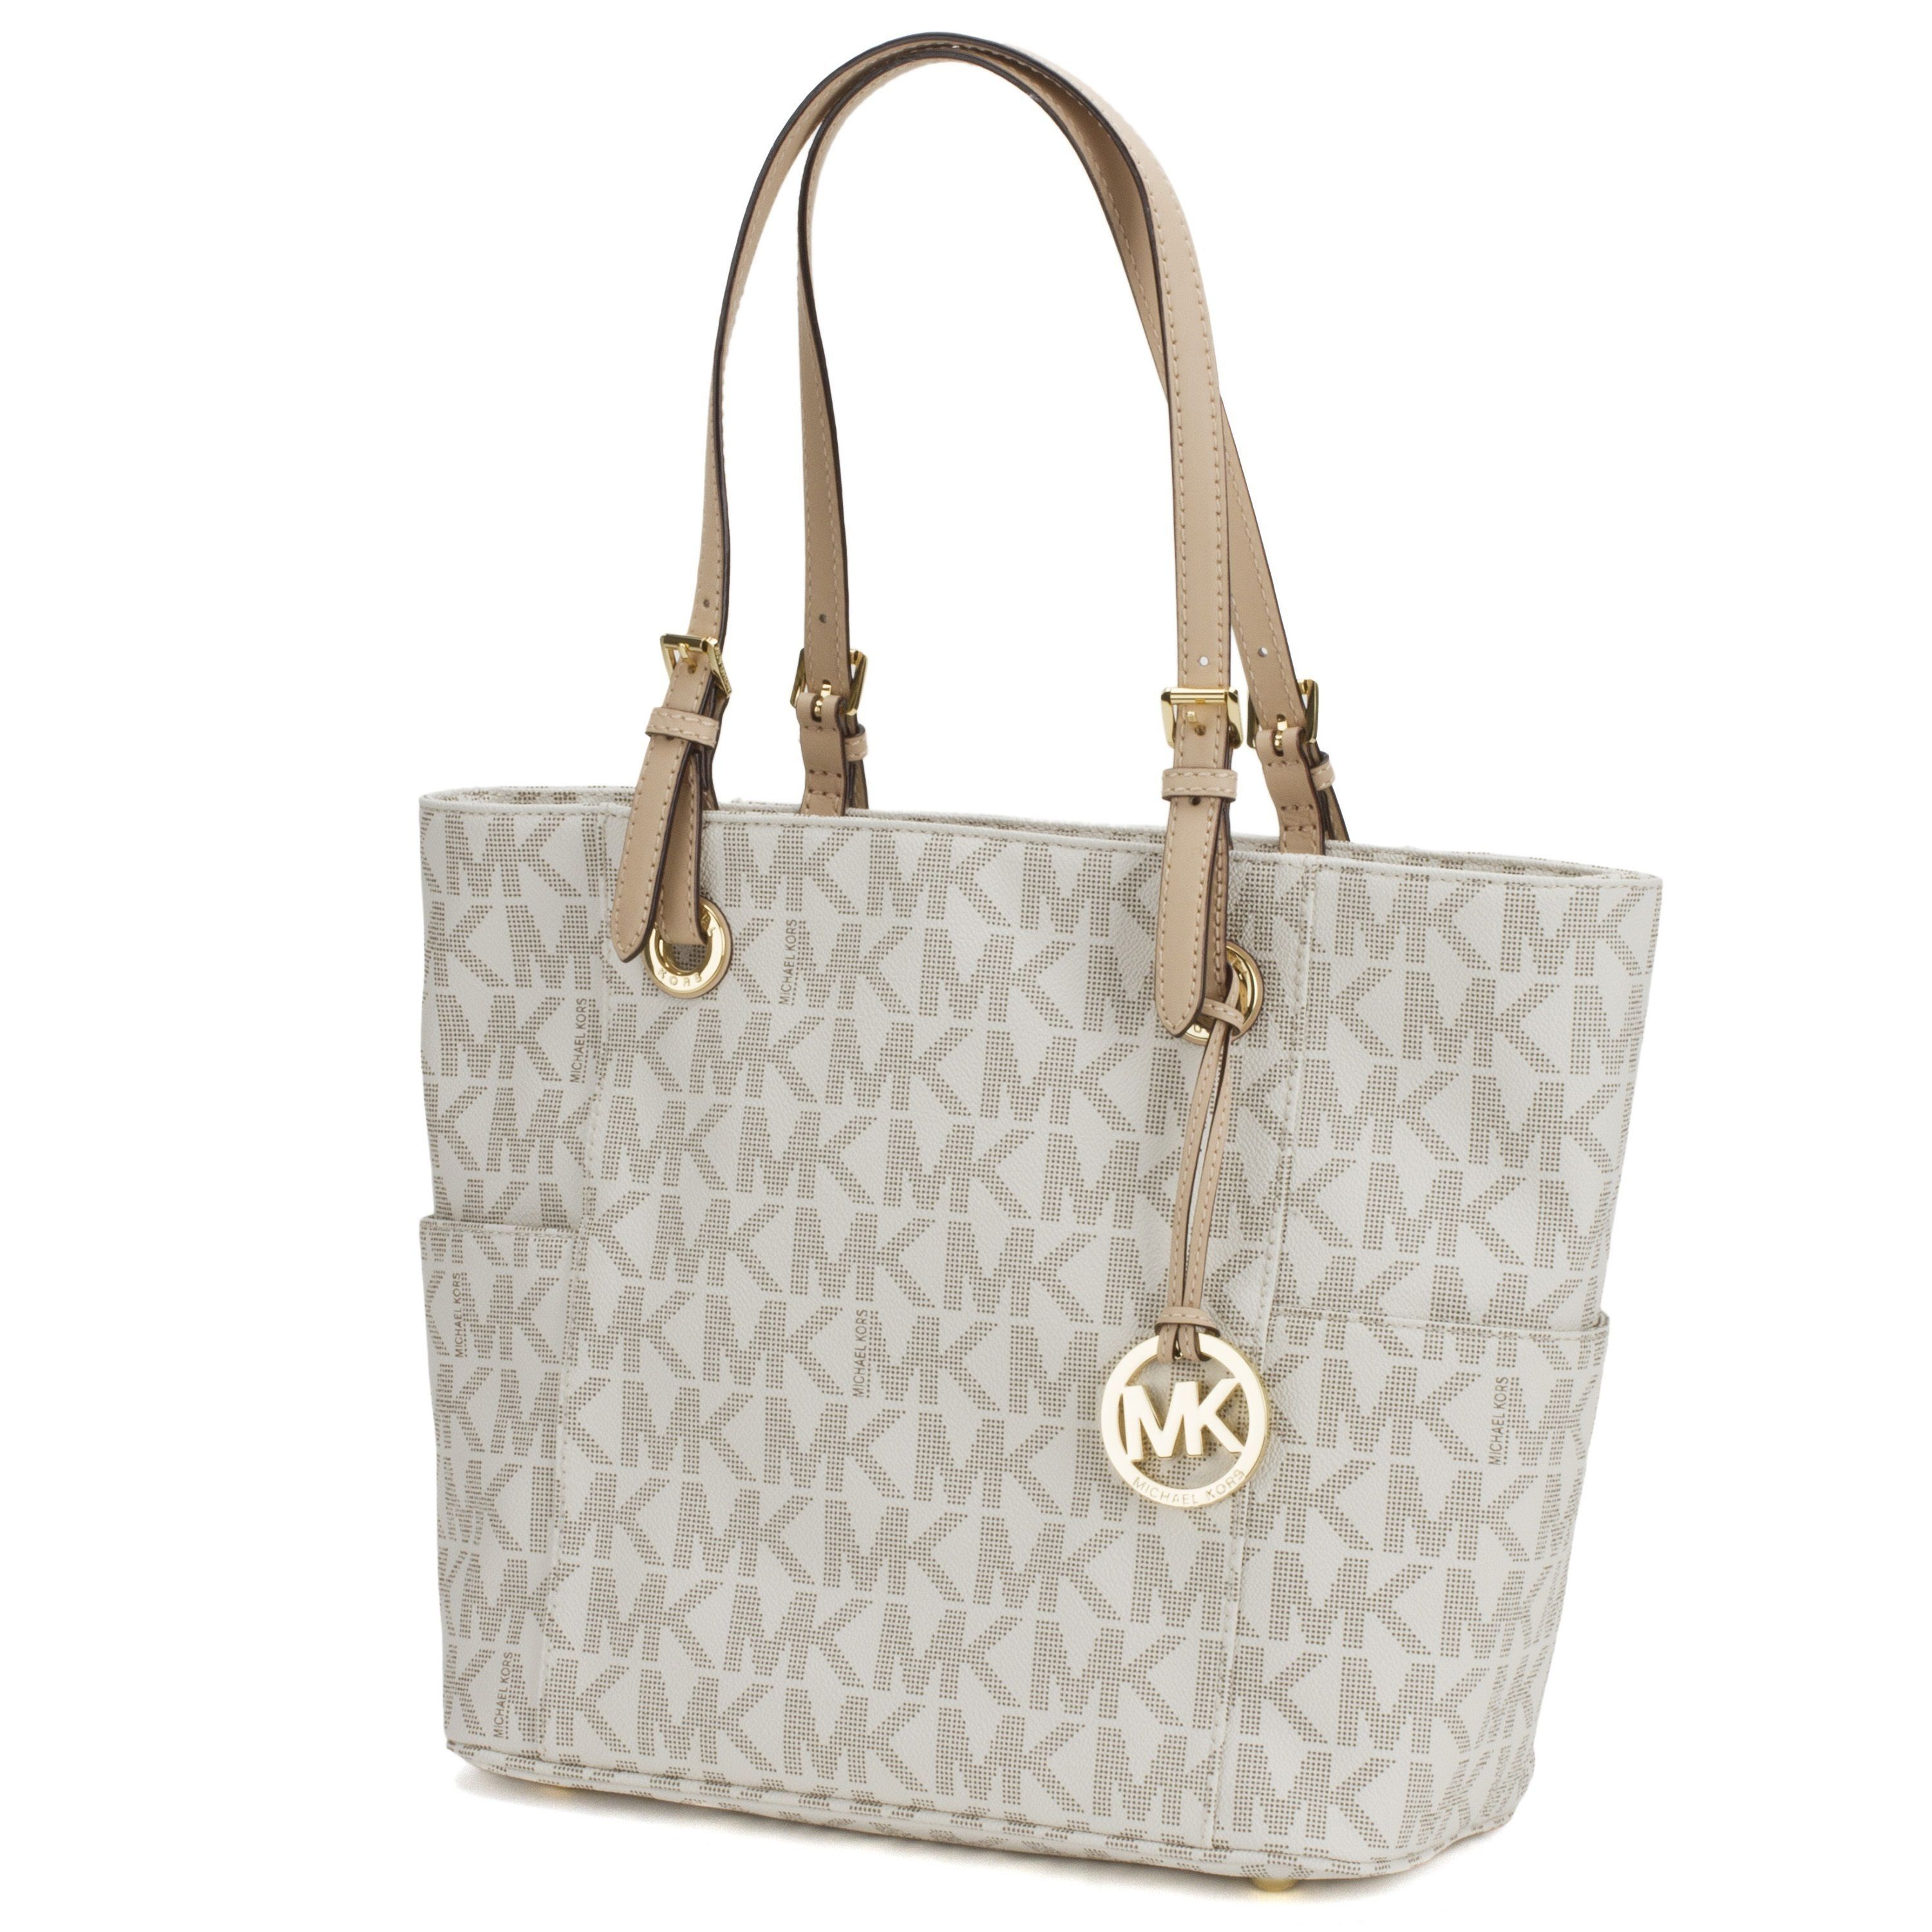 0dec425eac68 Michael Kors Jet Set Travel Large Vanilla Tote Travel in style with this  elegant bag.